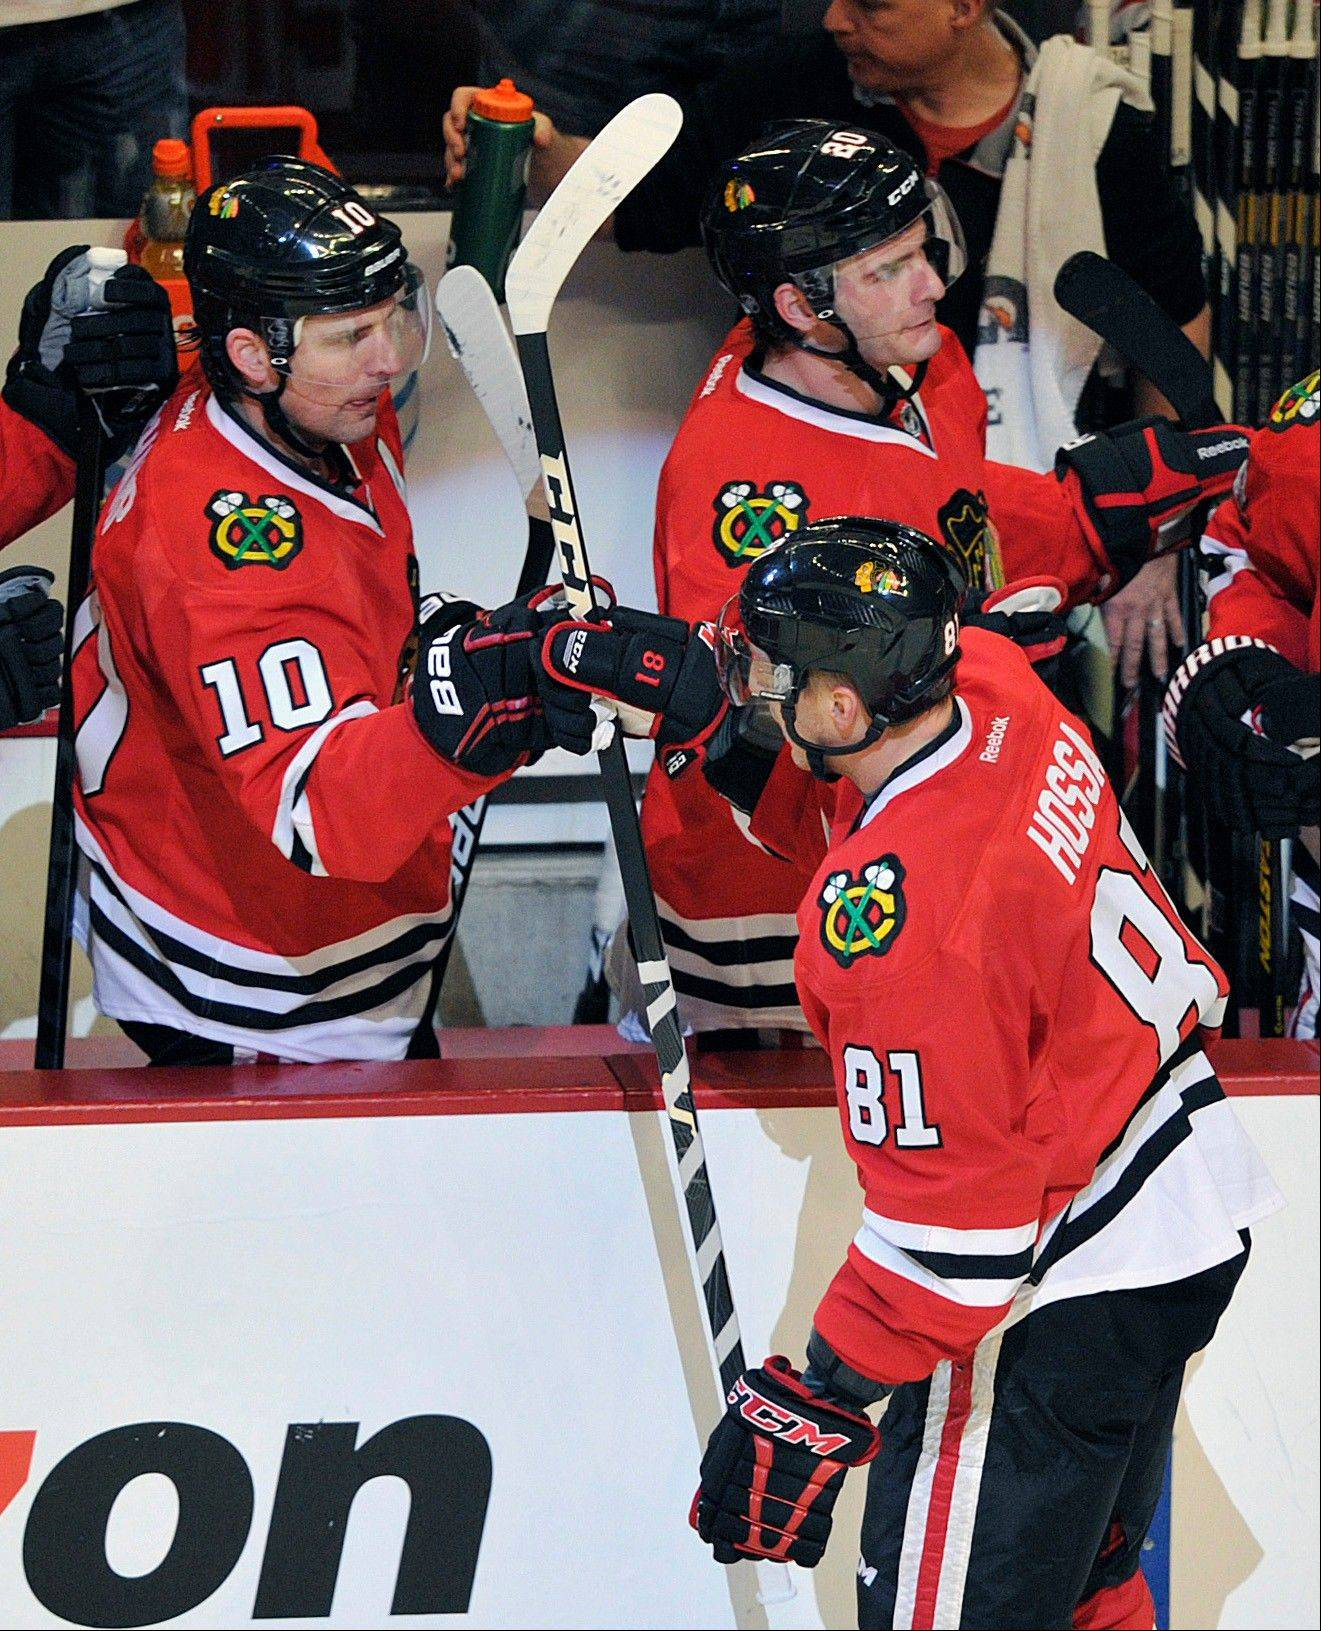 Chicago Blackhawks' Patrick Sharp (10) congratulates Marian Hossa (81) after Hossa's goal against the Minnesota Wild during the second period of Game 1 of an NHL hockey Stanley Cup playoff series Tuesday, April 30, 2013, in Chicago.